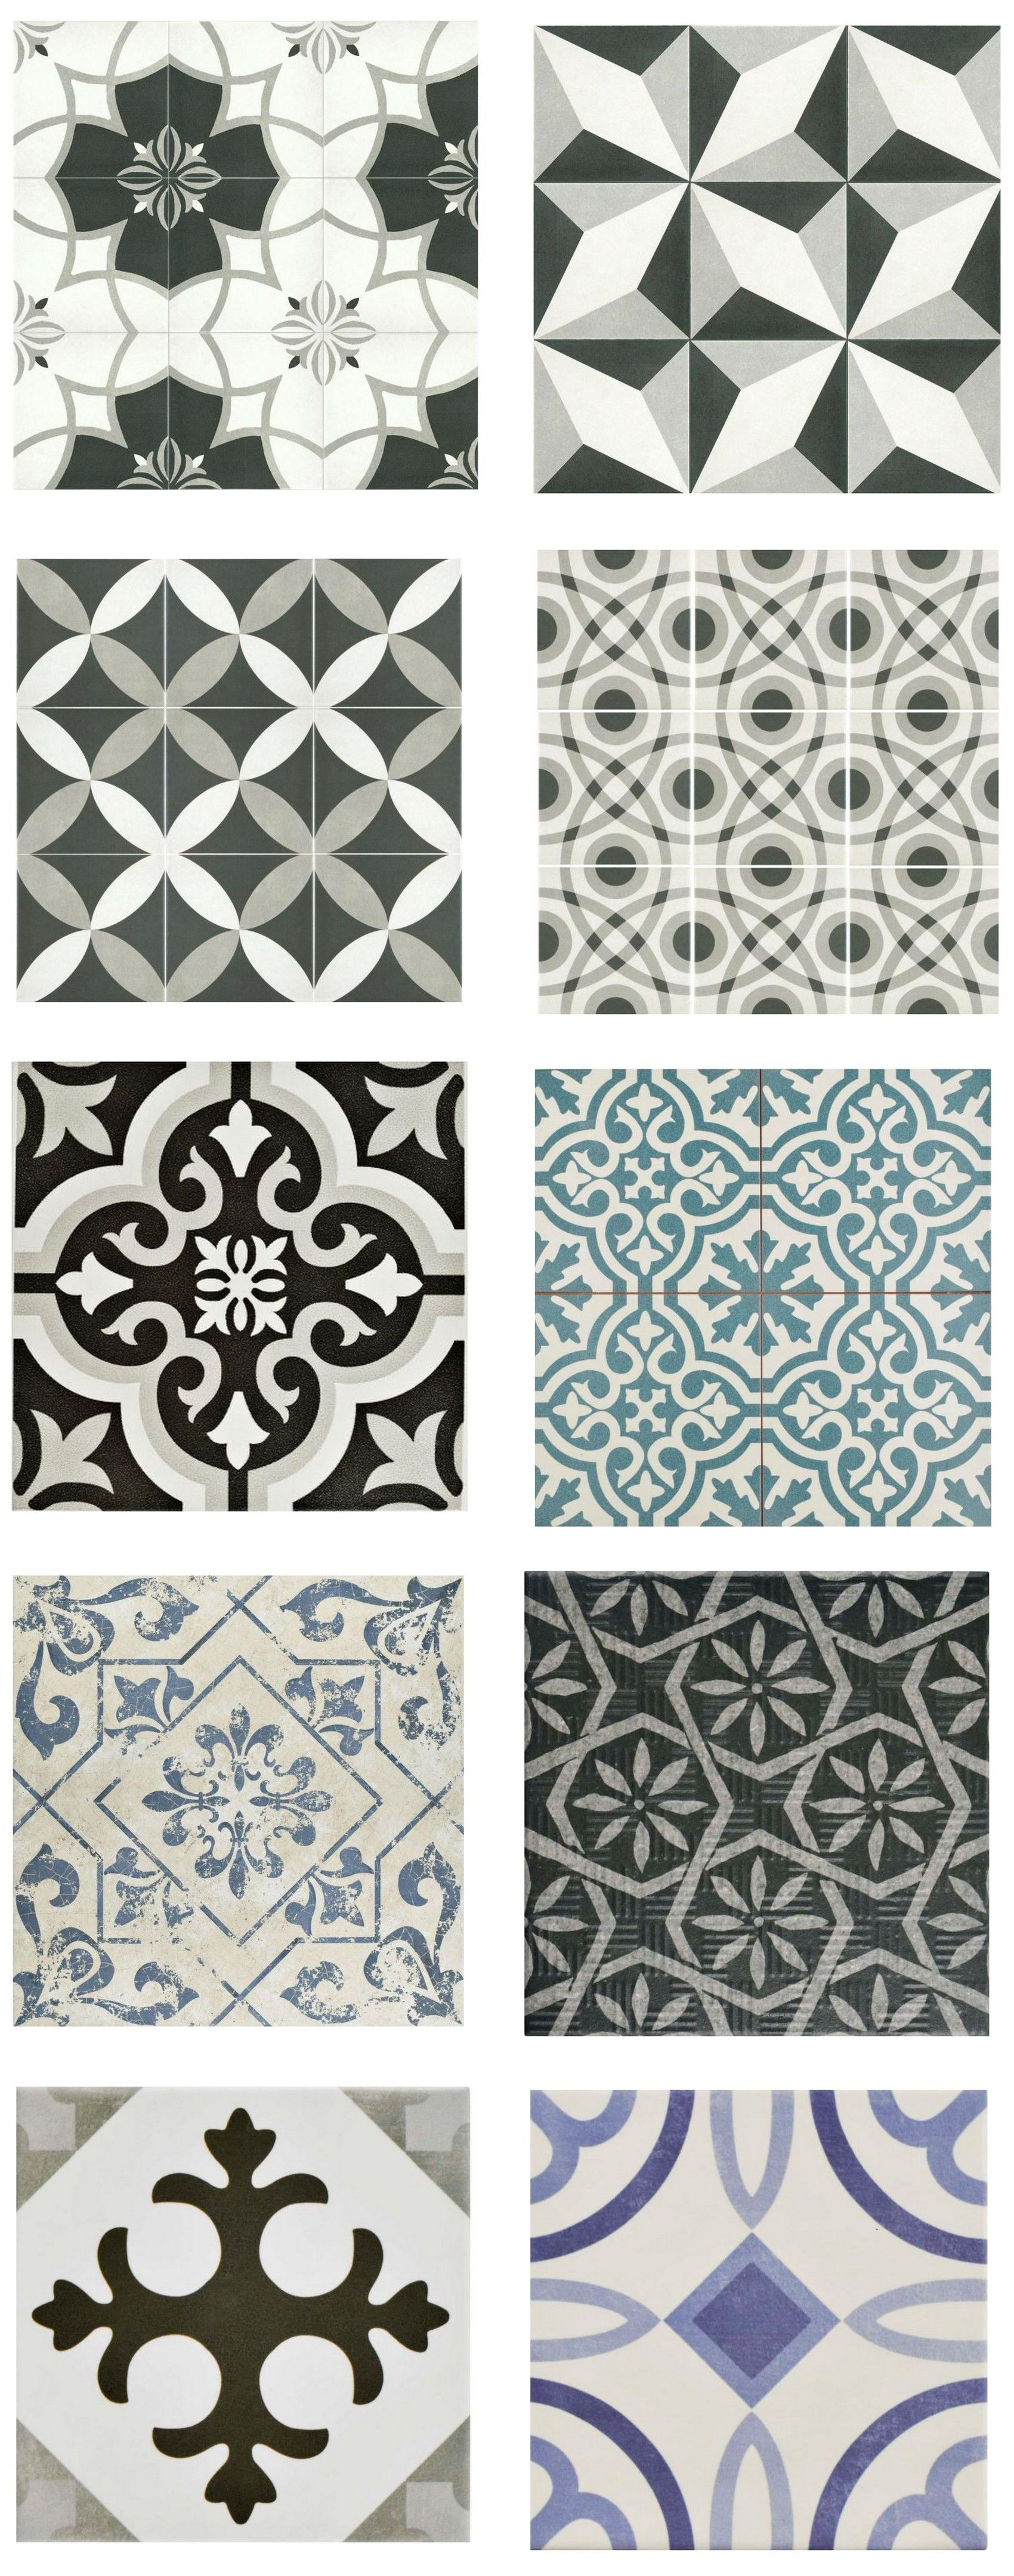 Cement Look Tile Home Depot Porcelain And Ceramic Tiles That Look